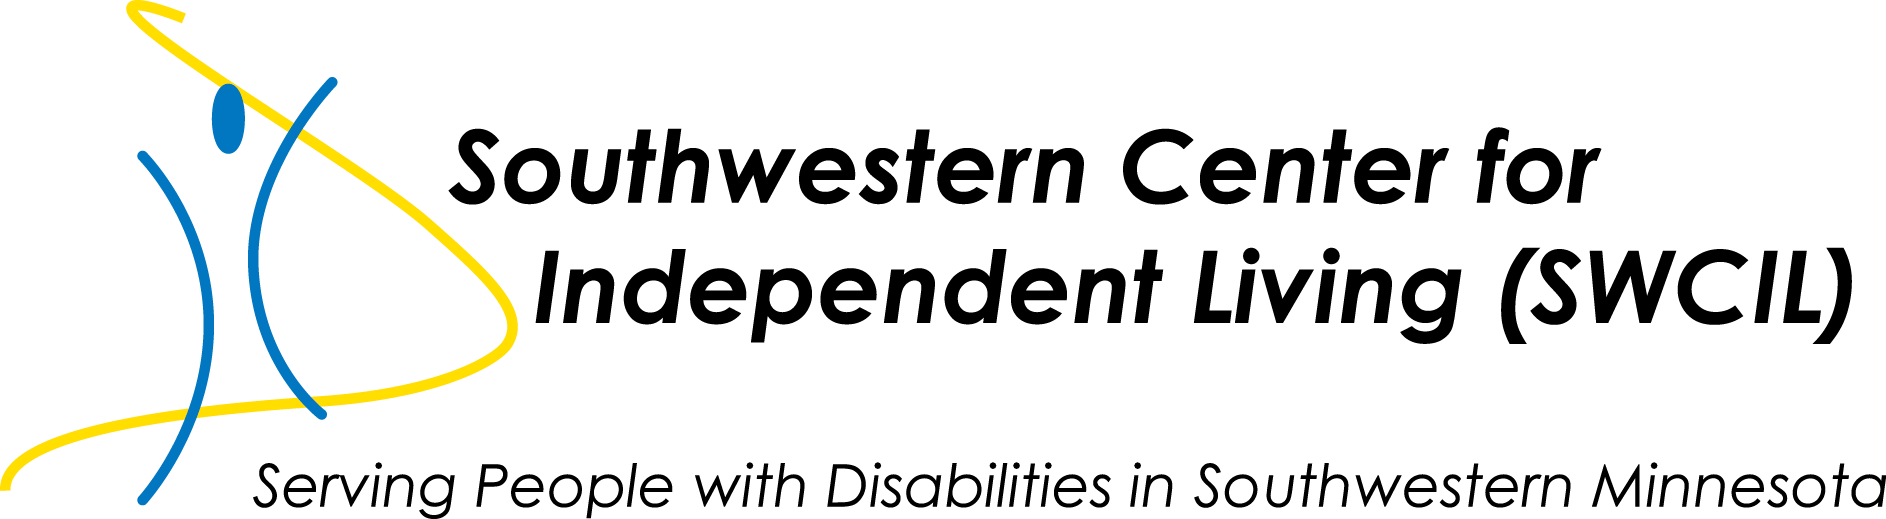 Southwestern Center for Independent Living Logo